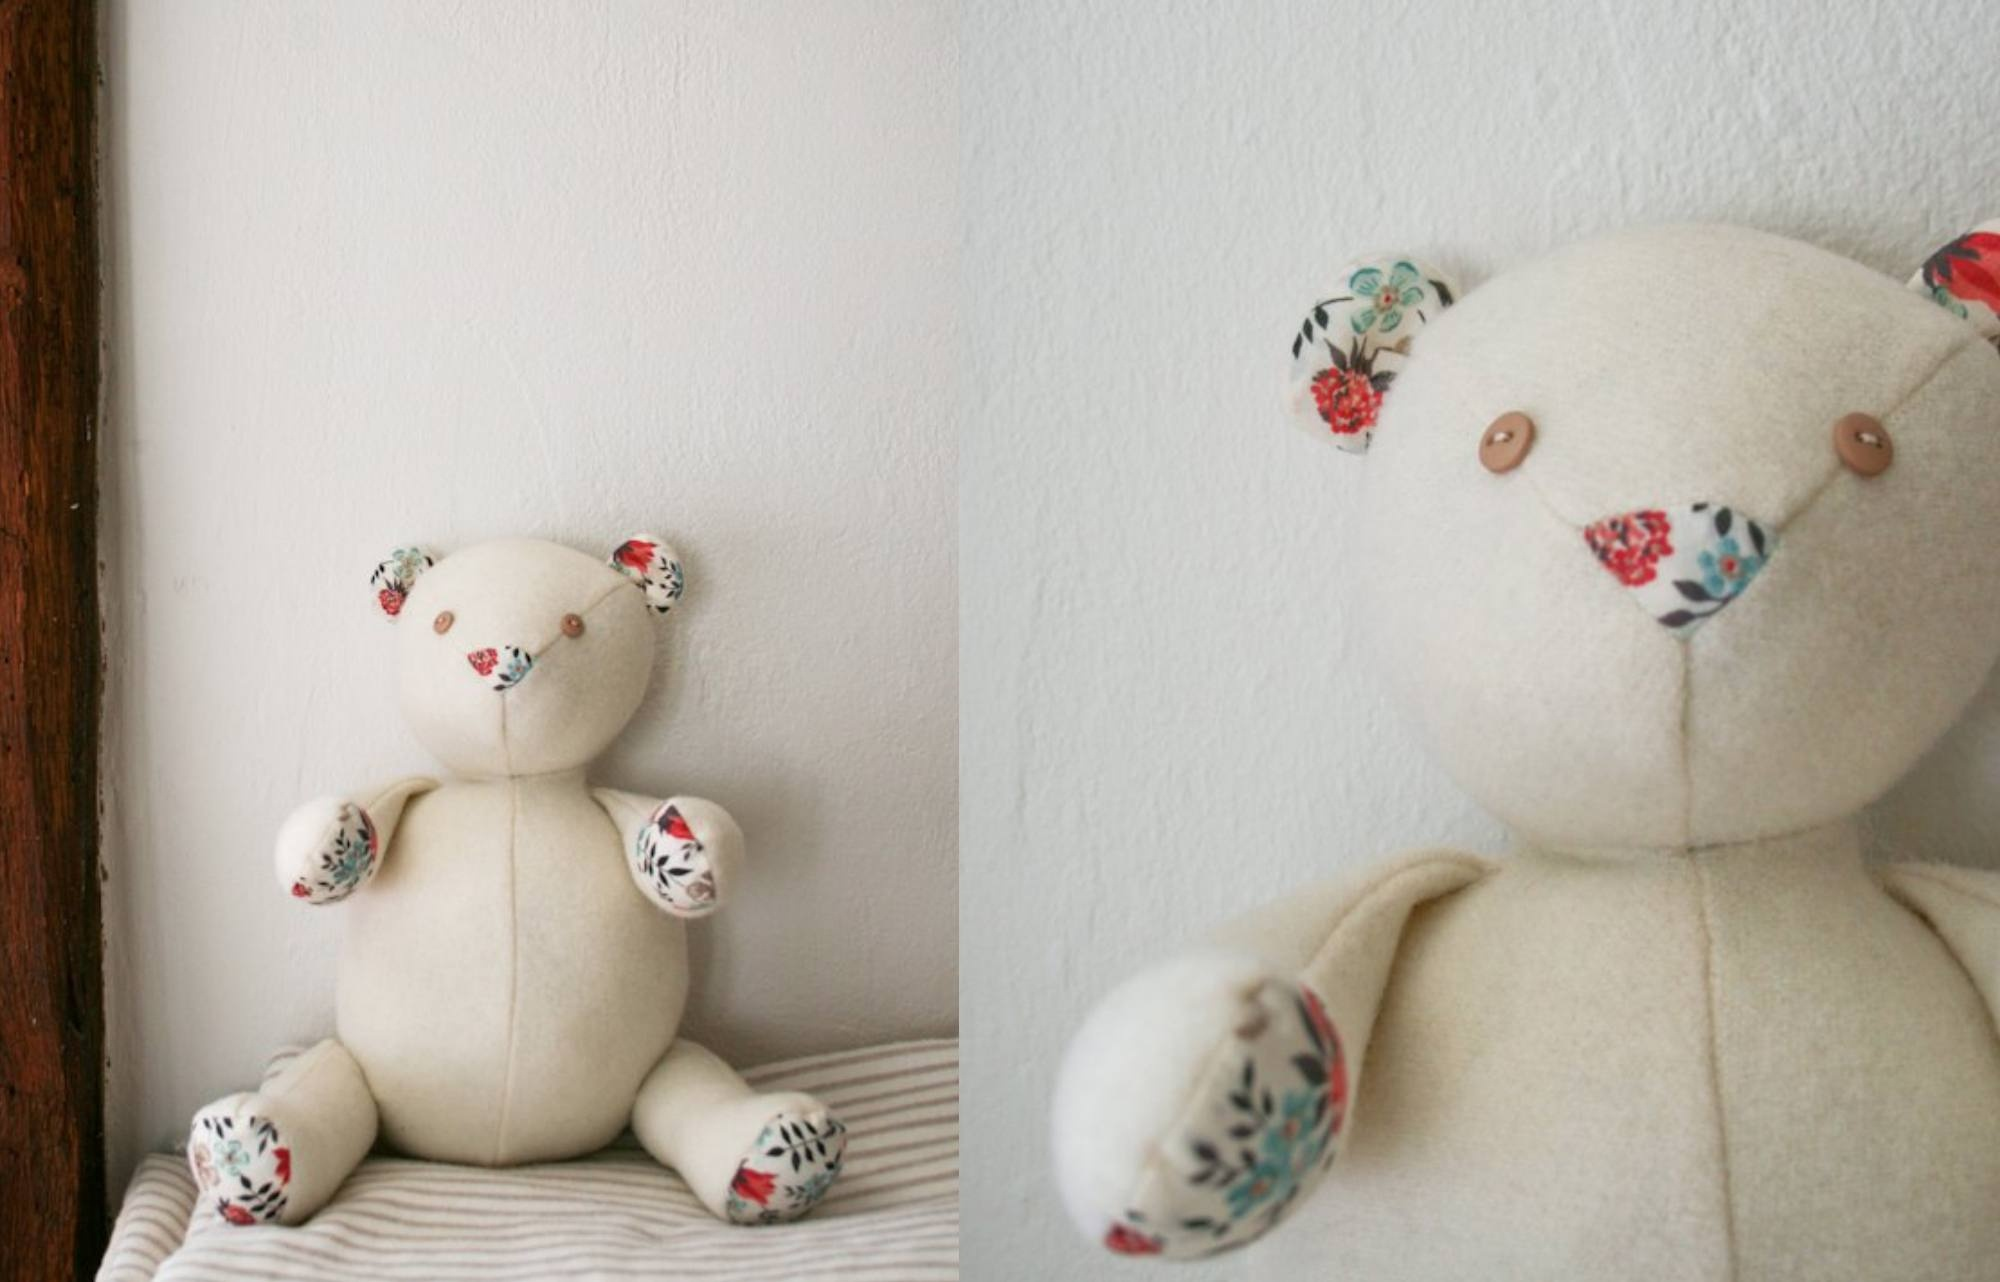 10 Adorable Teddy Bear Sewing Patterns - Free Teddy Bear Patterns Printable